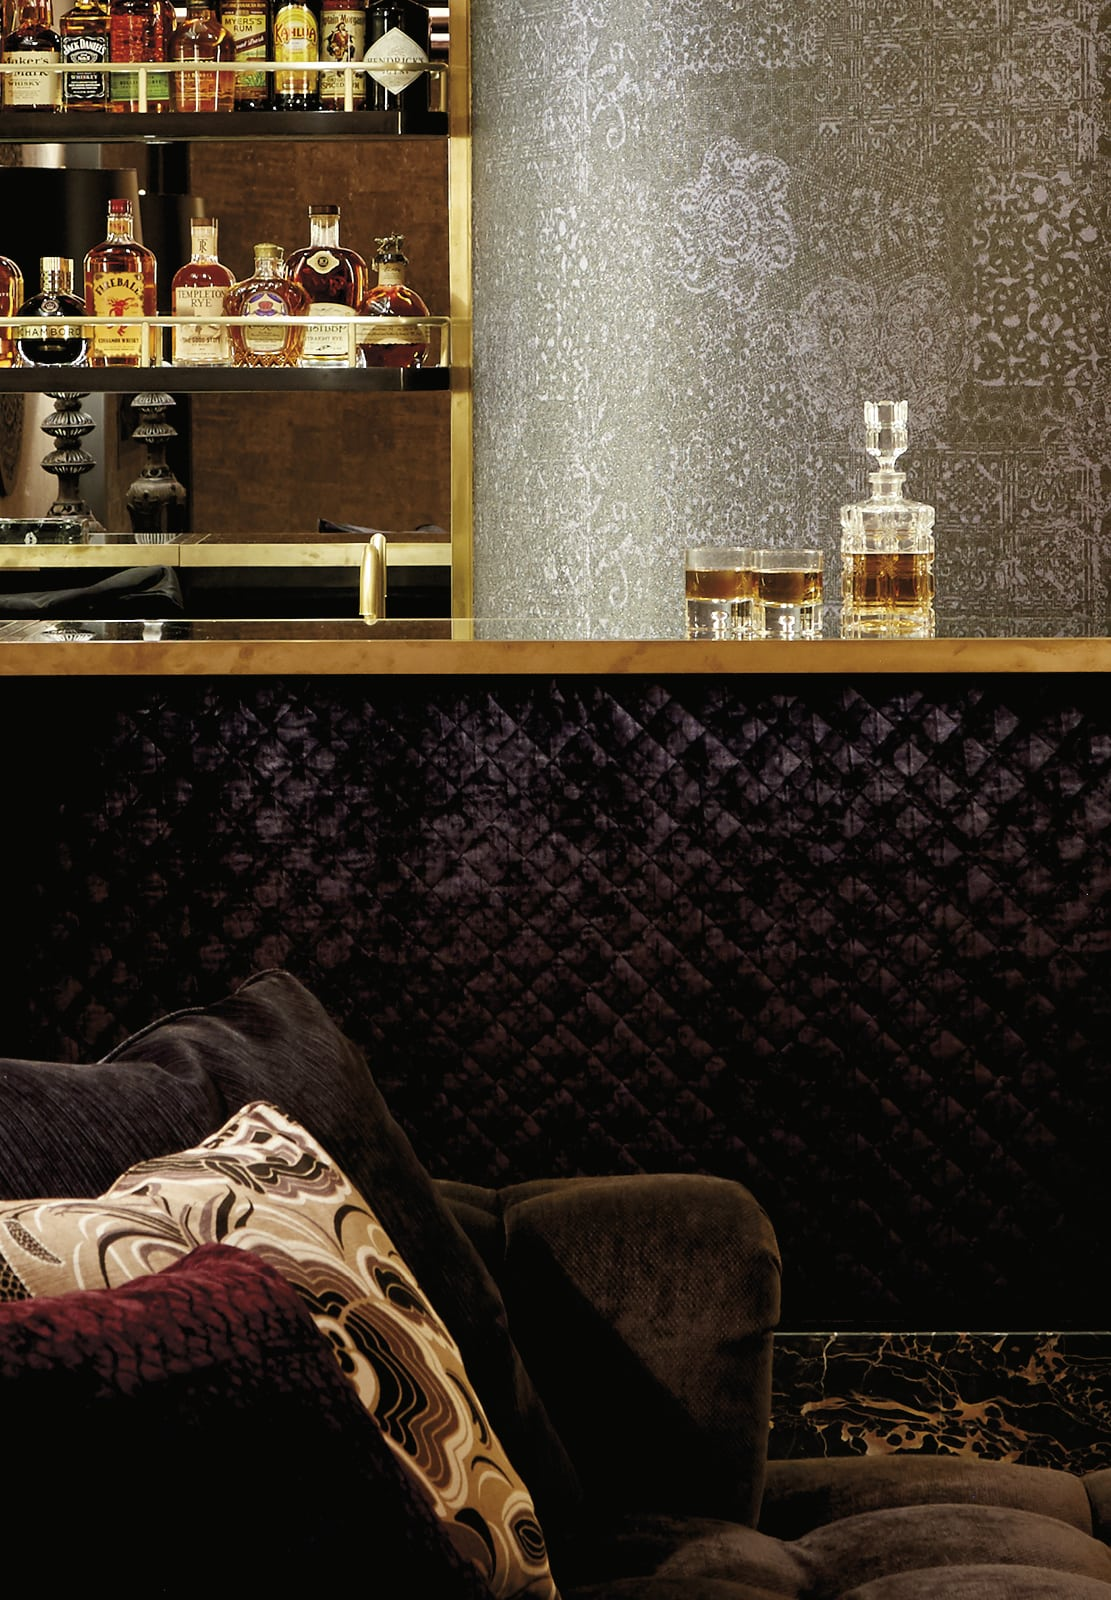 Richly textured bar with a whiskey decanter